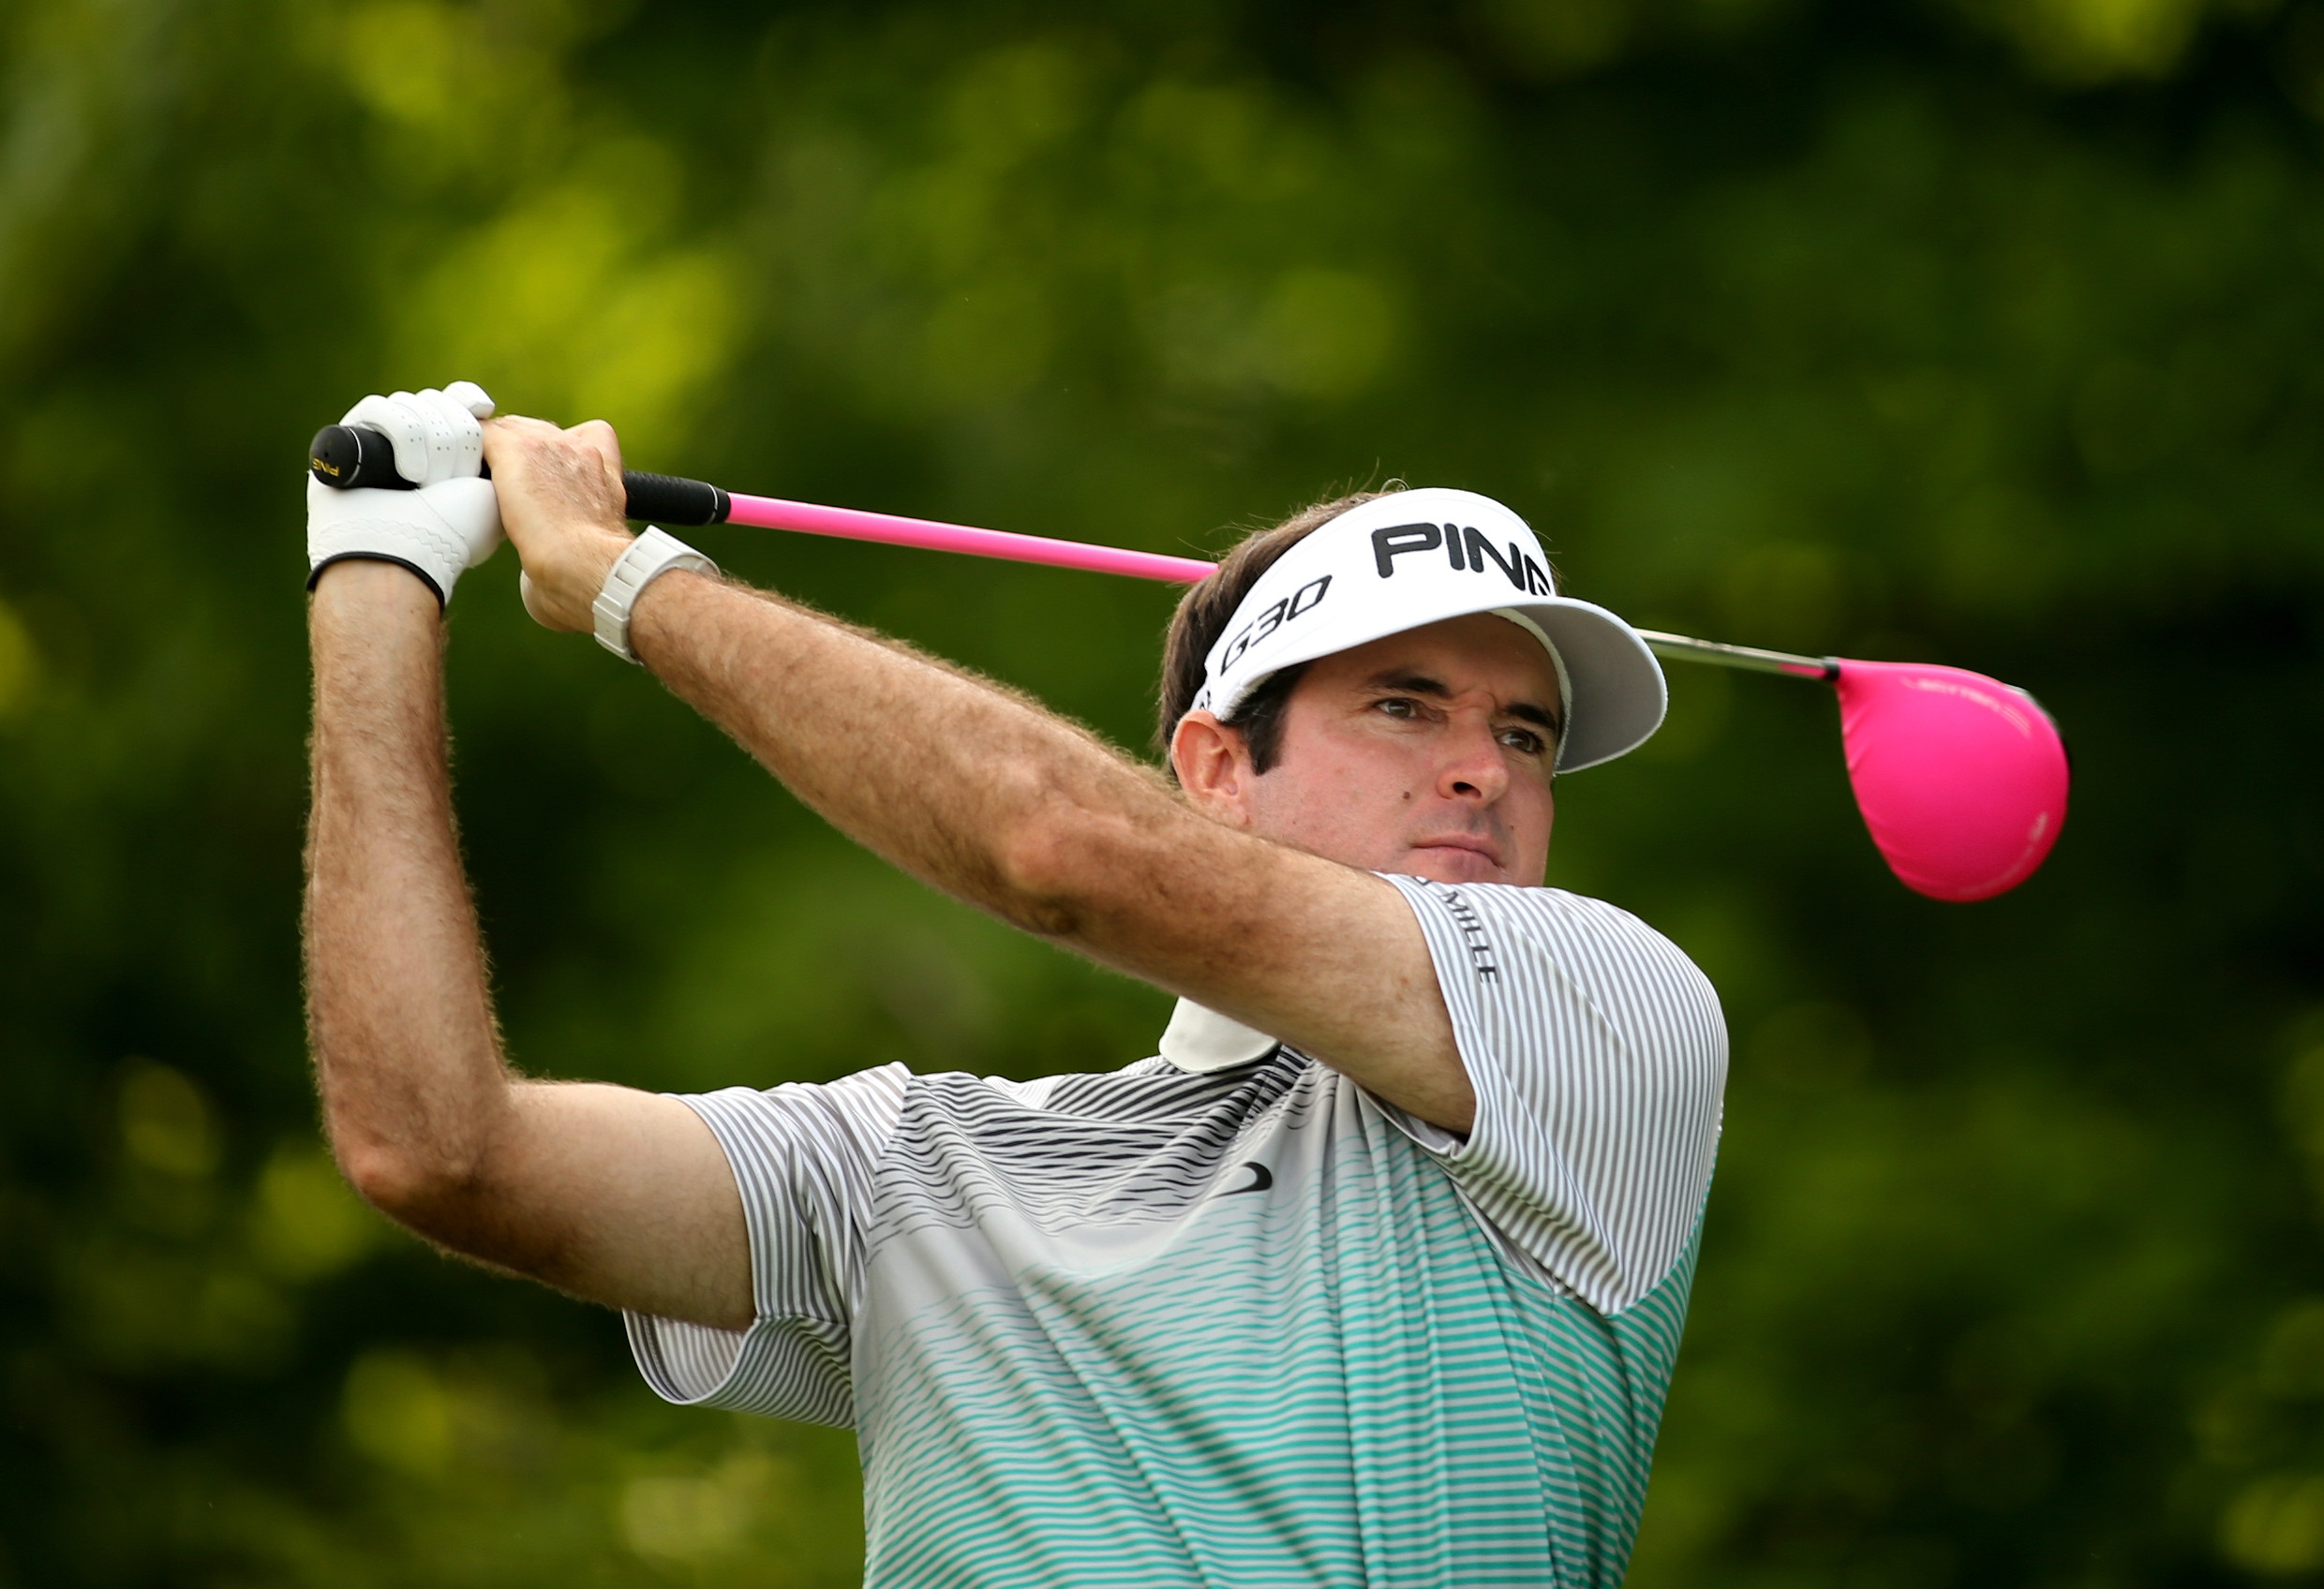 Bubba Watson beats Saints rookie quarterback in throwing competition